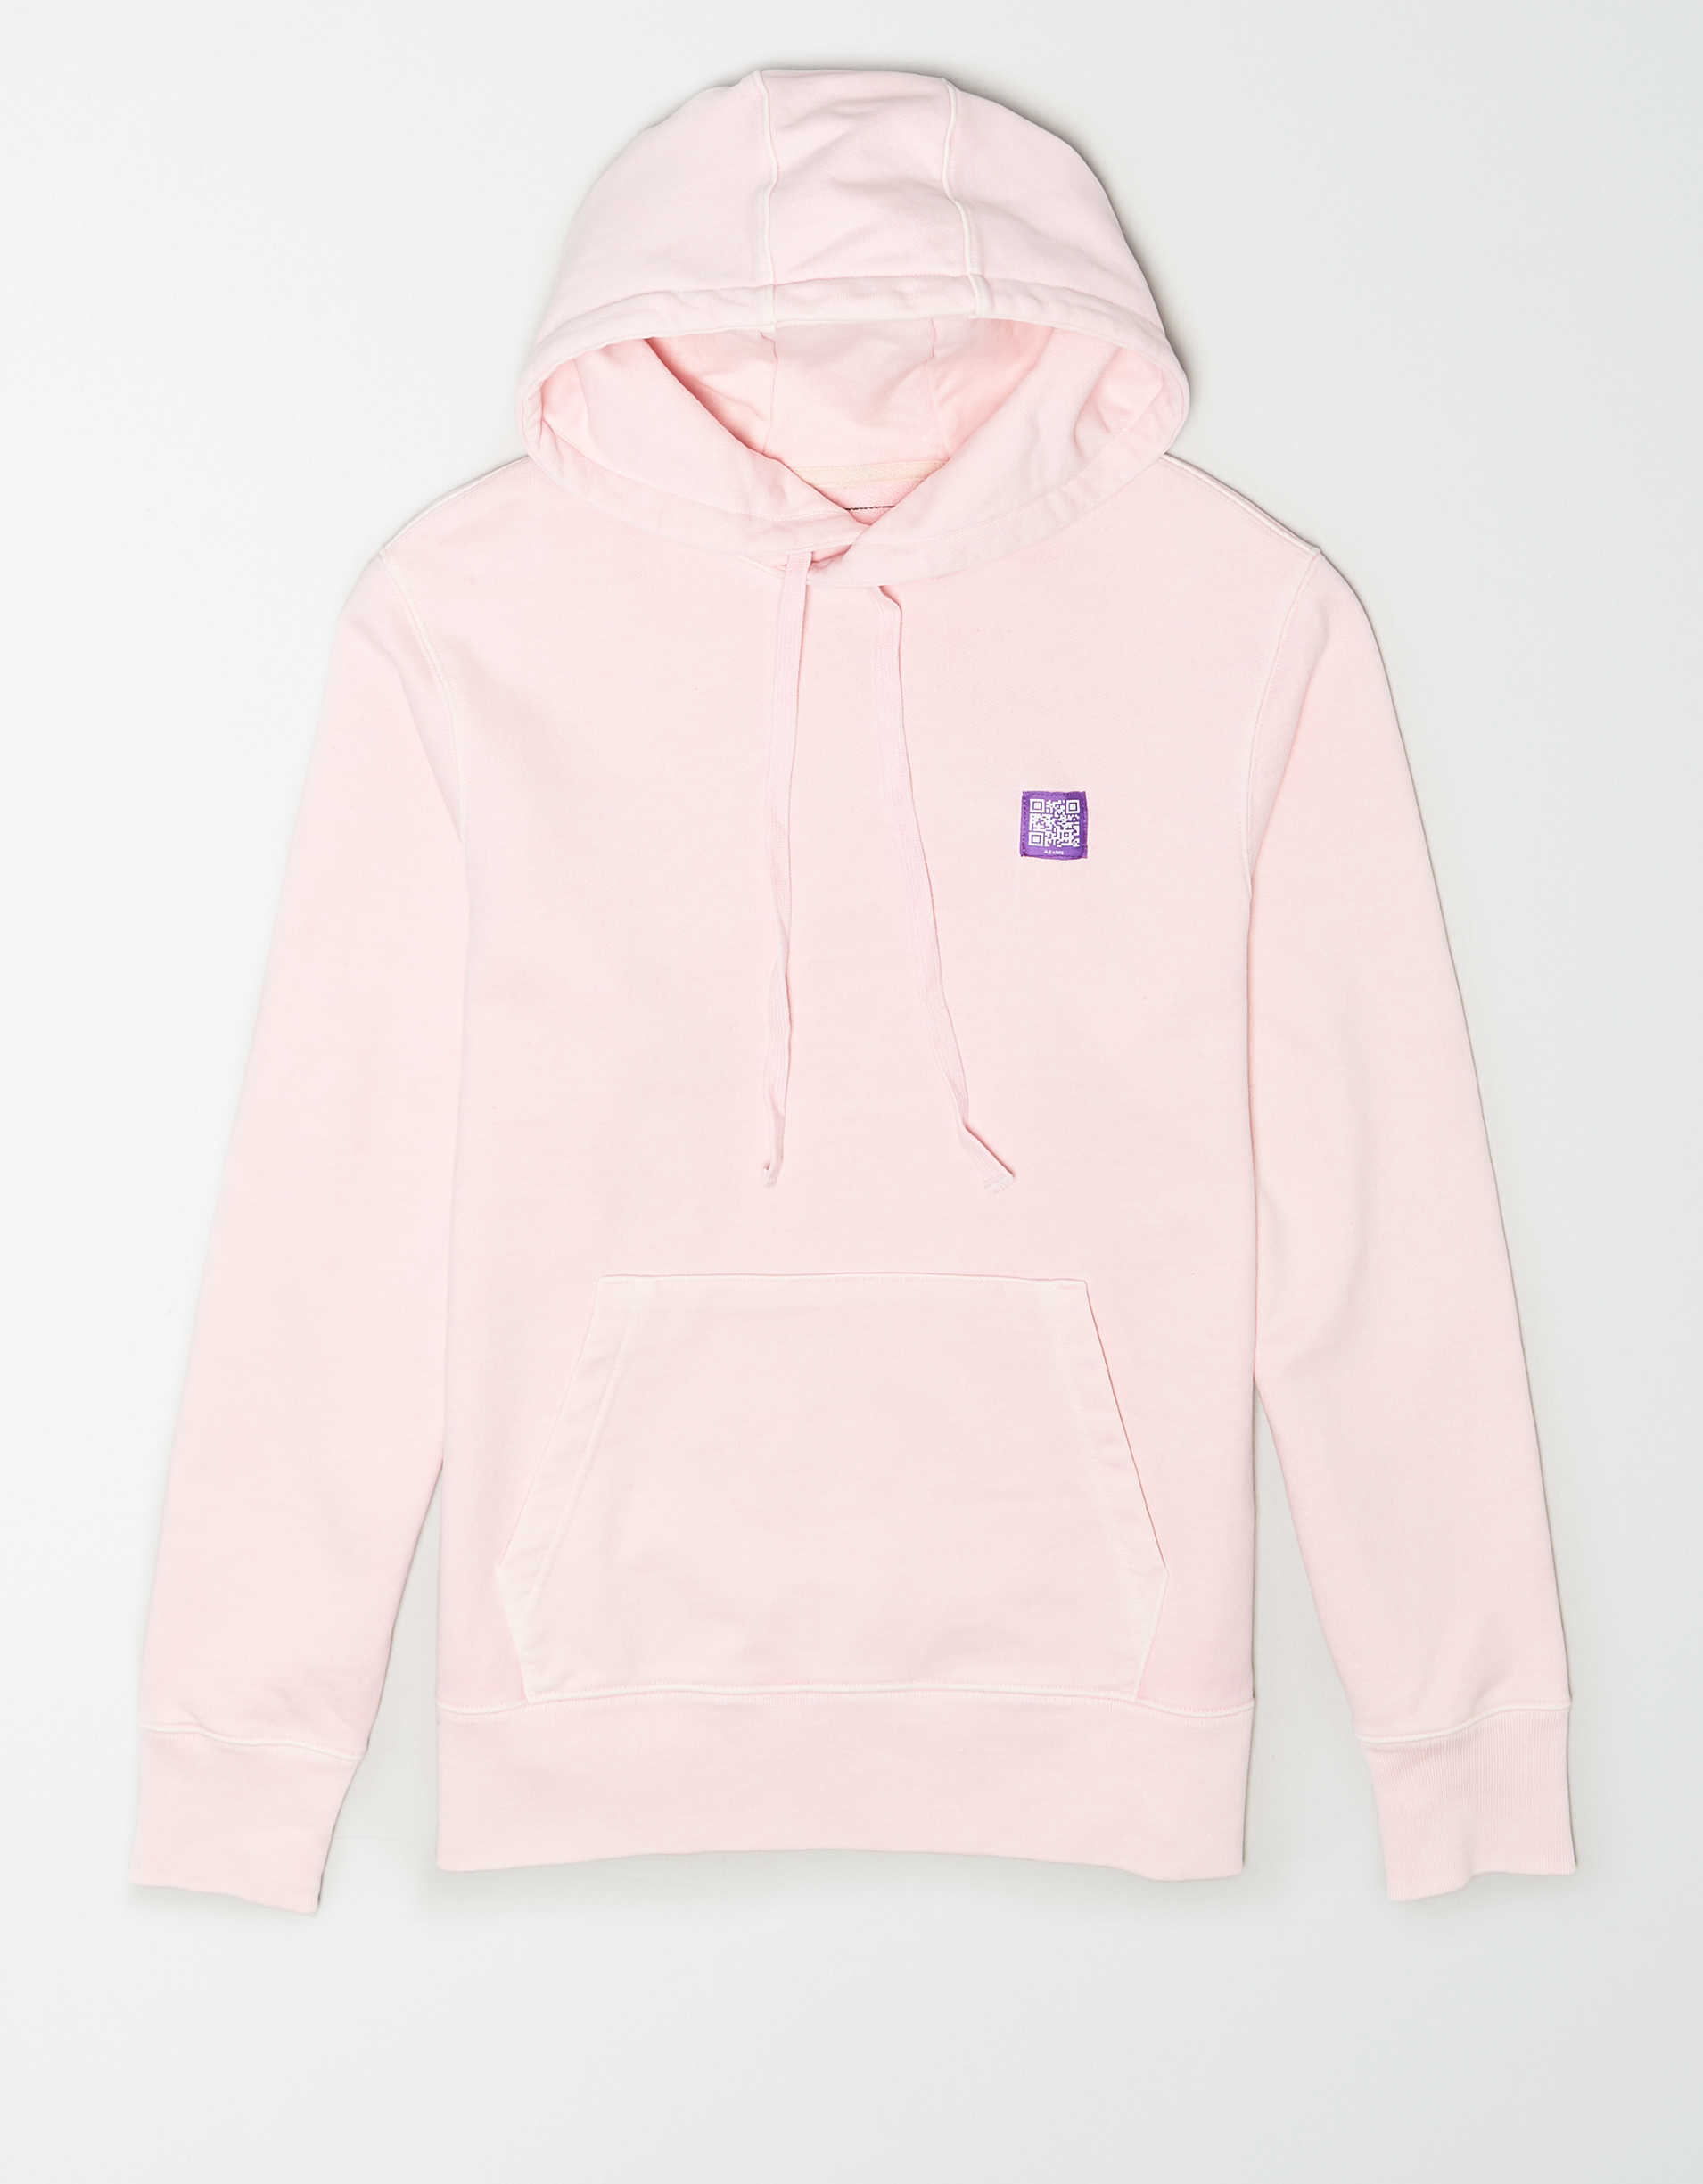 AE X Delivering Good Graphic Hoodie